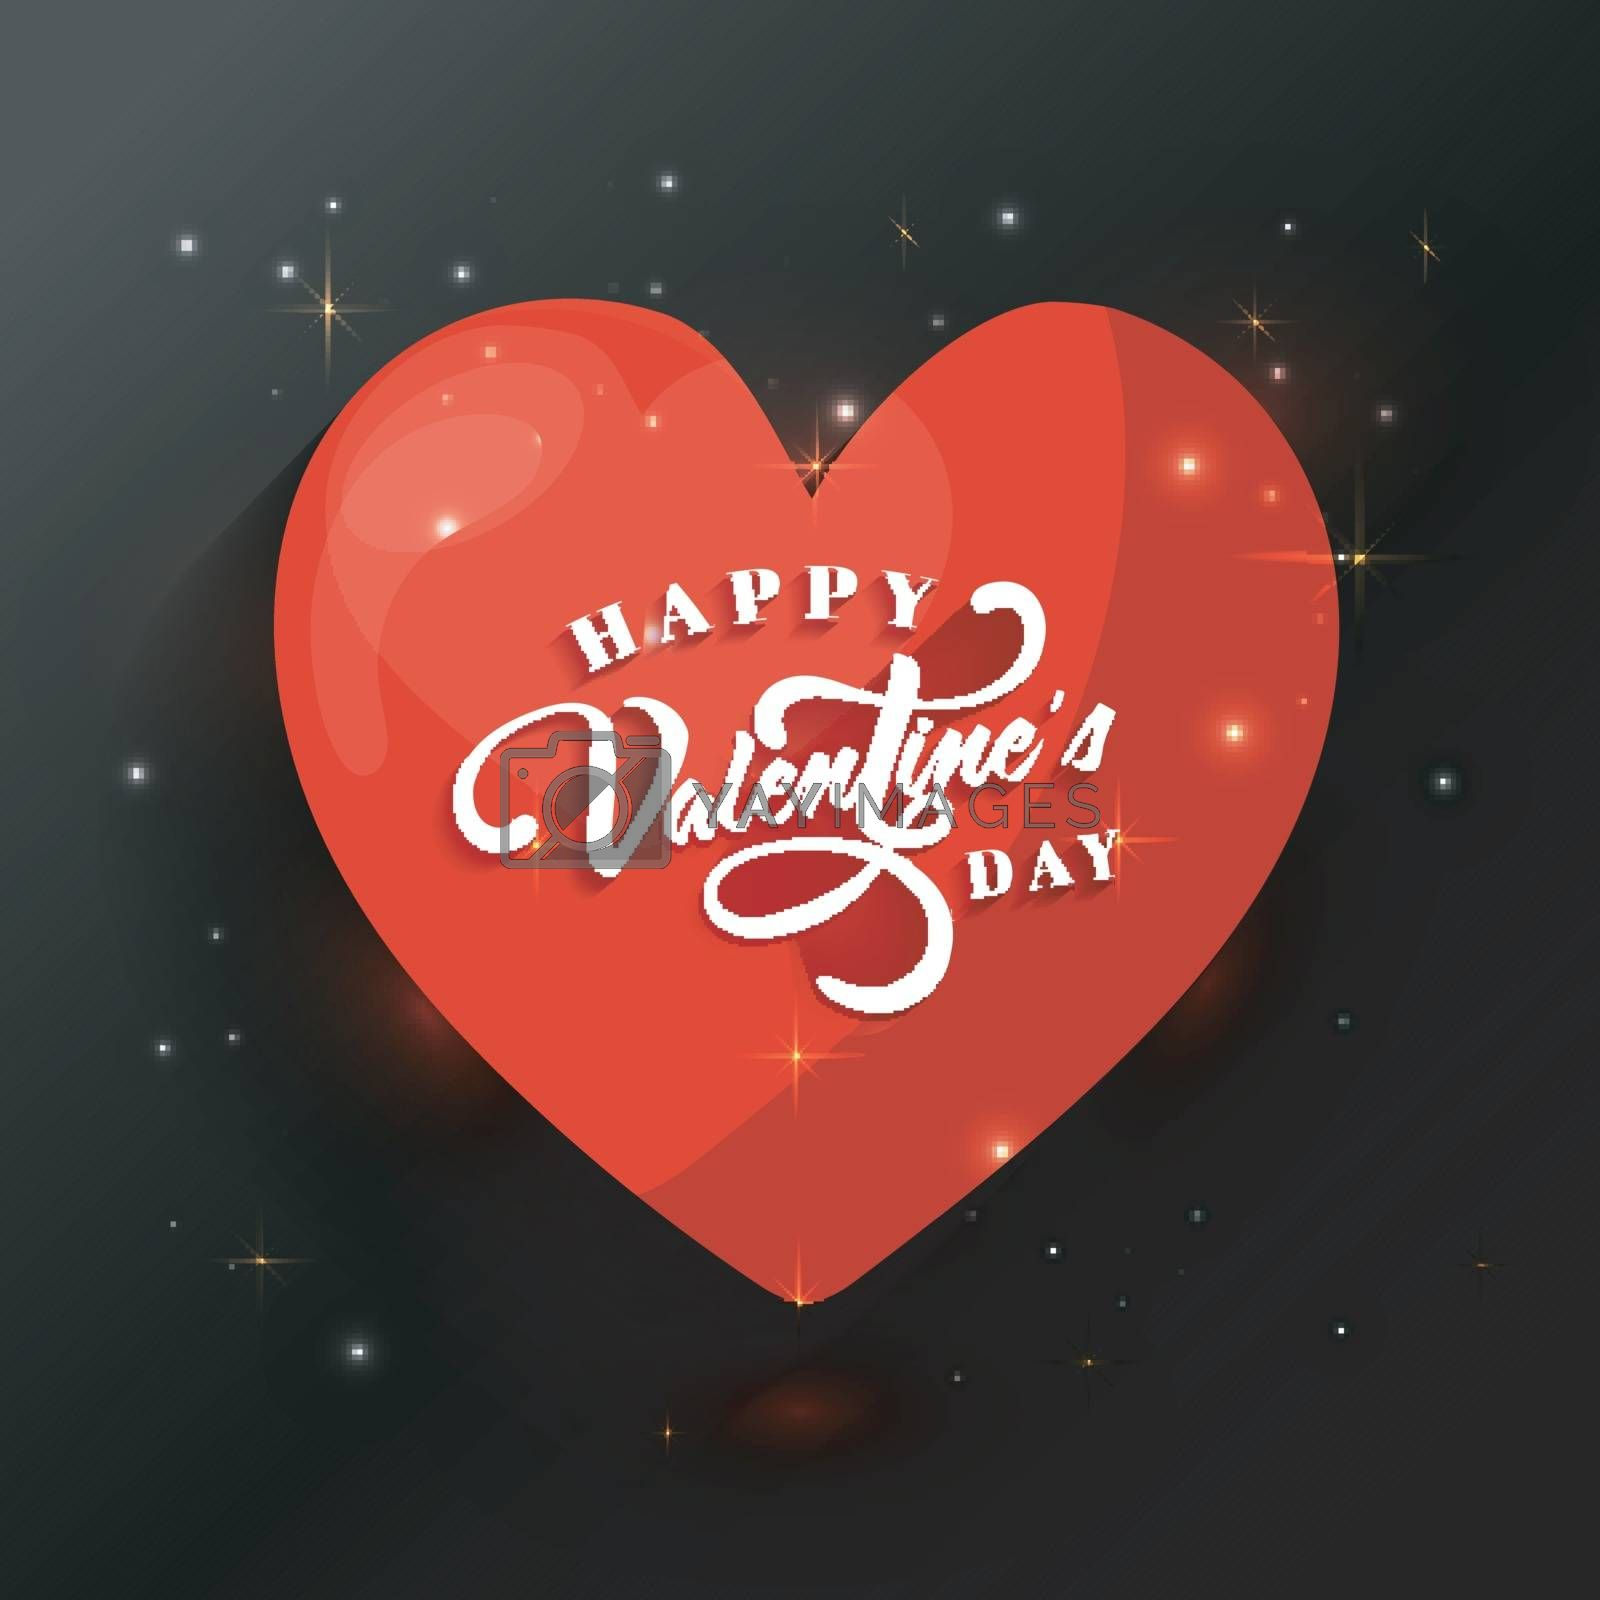 Greeting card design with creative Heart on shiny background for Happy Valentine's Day celebration.